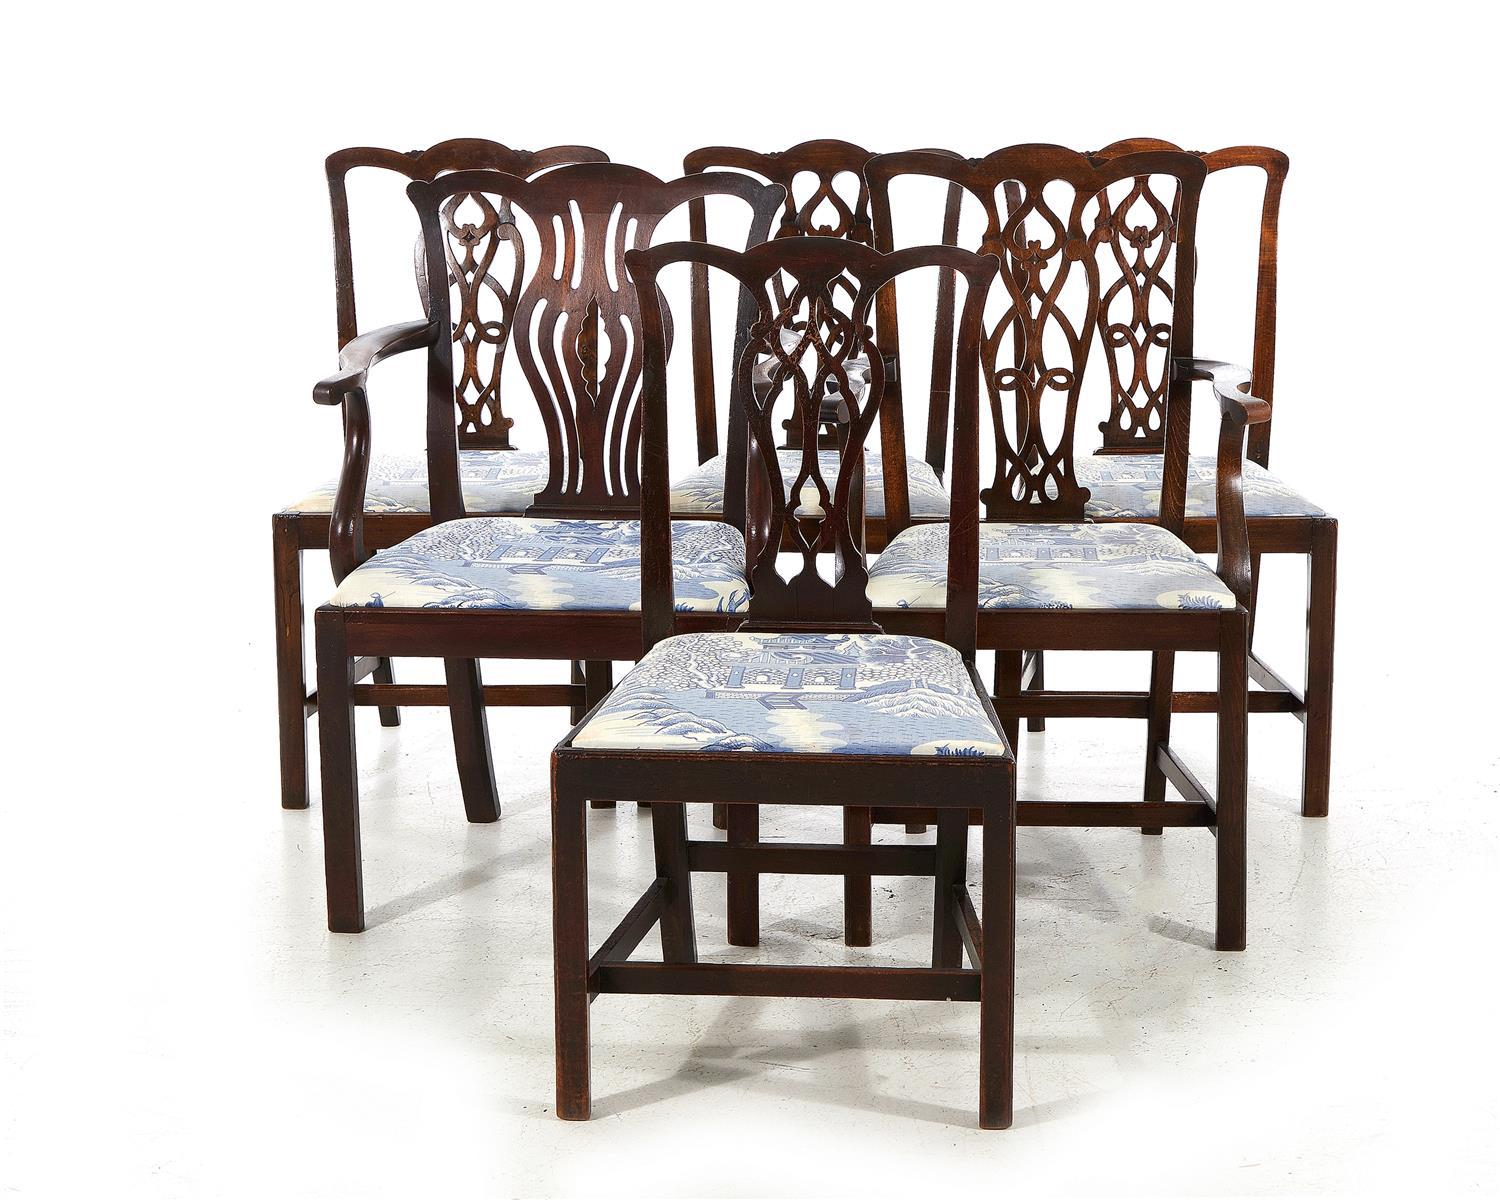 Chinese Chippendale style dining chairs (6pcs)